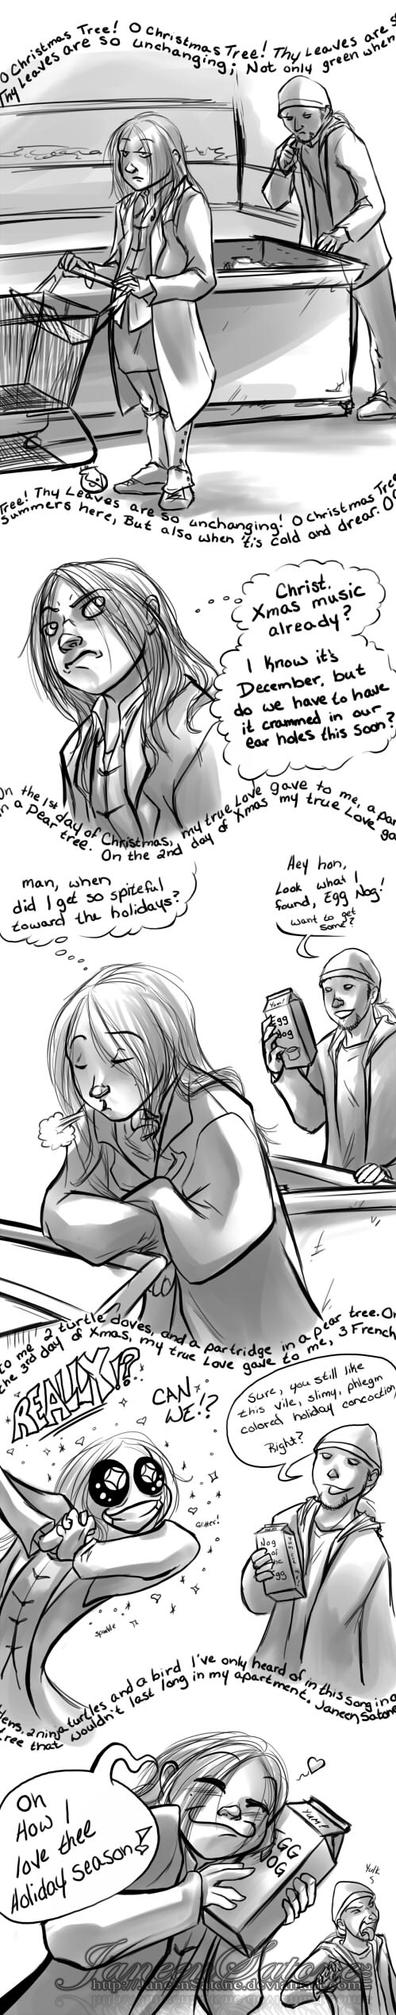 It Came From Real Life: Egg Nog by JaneenSatone